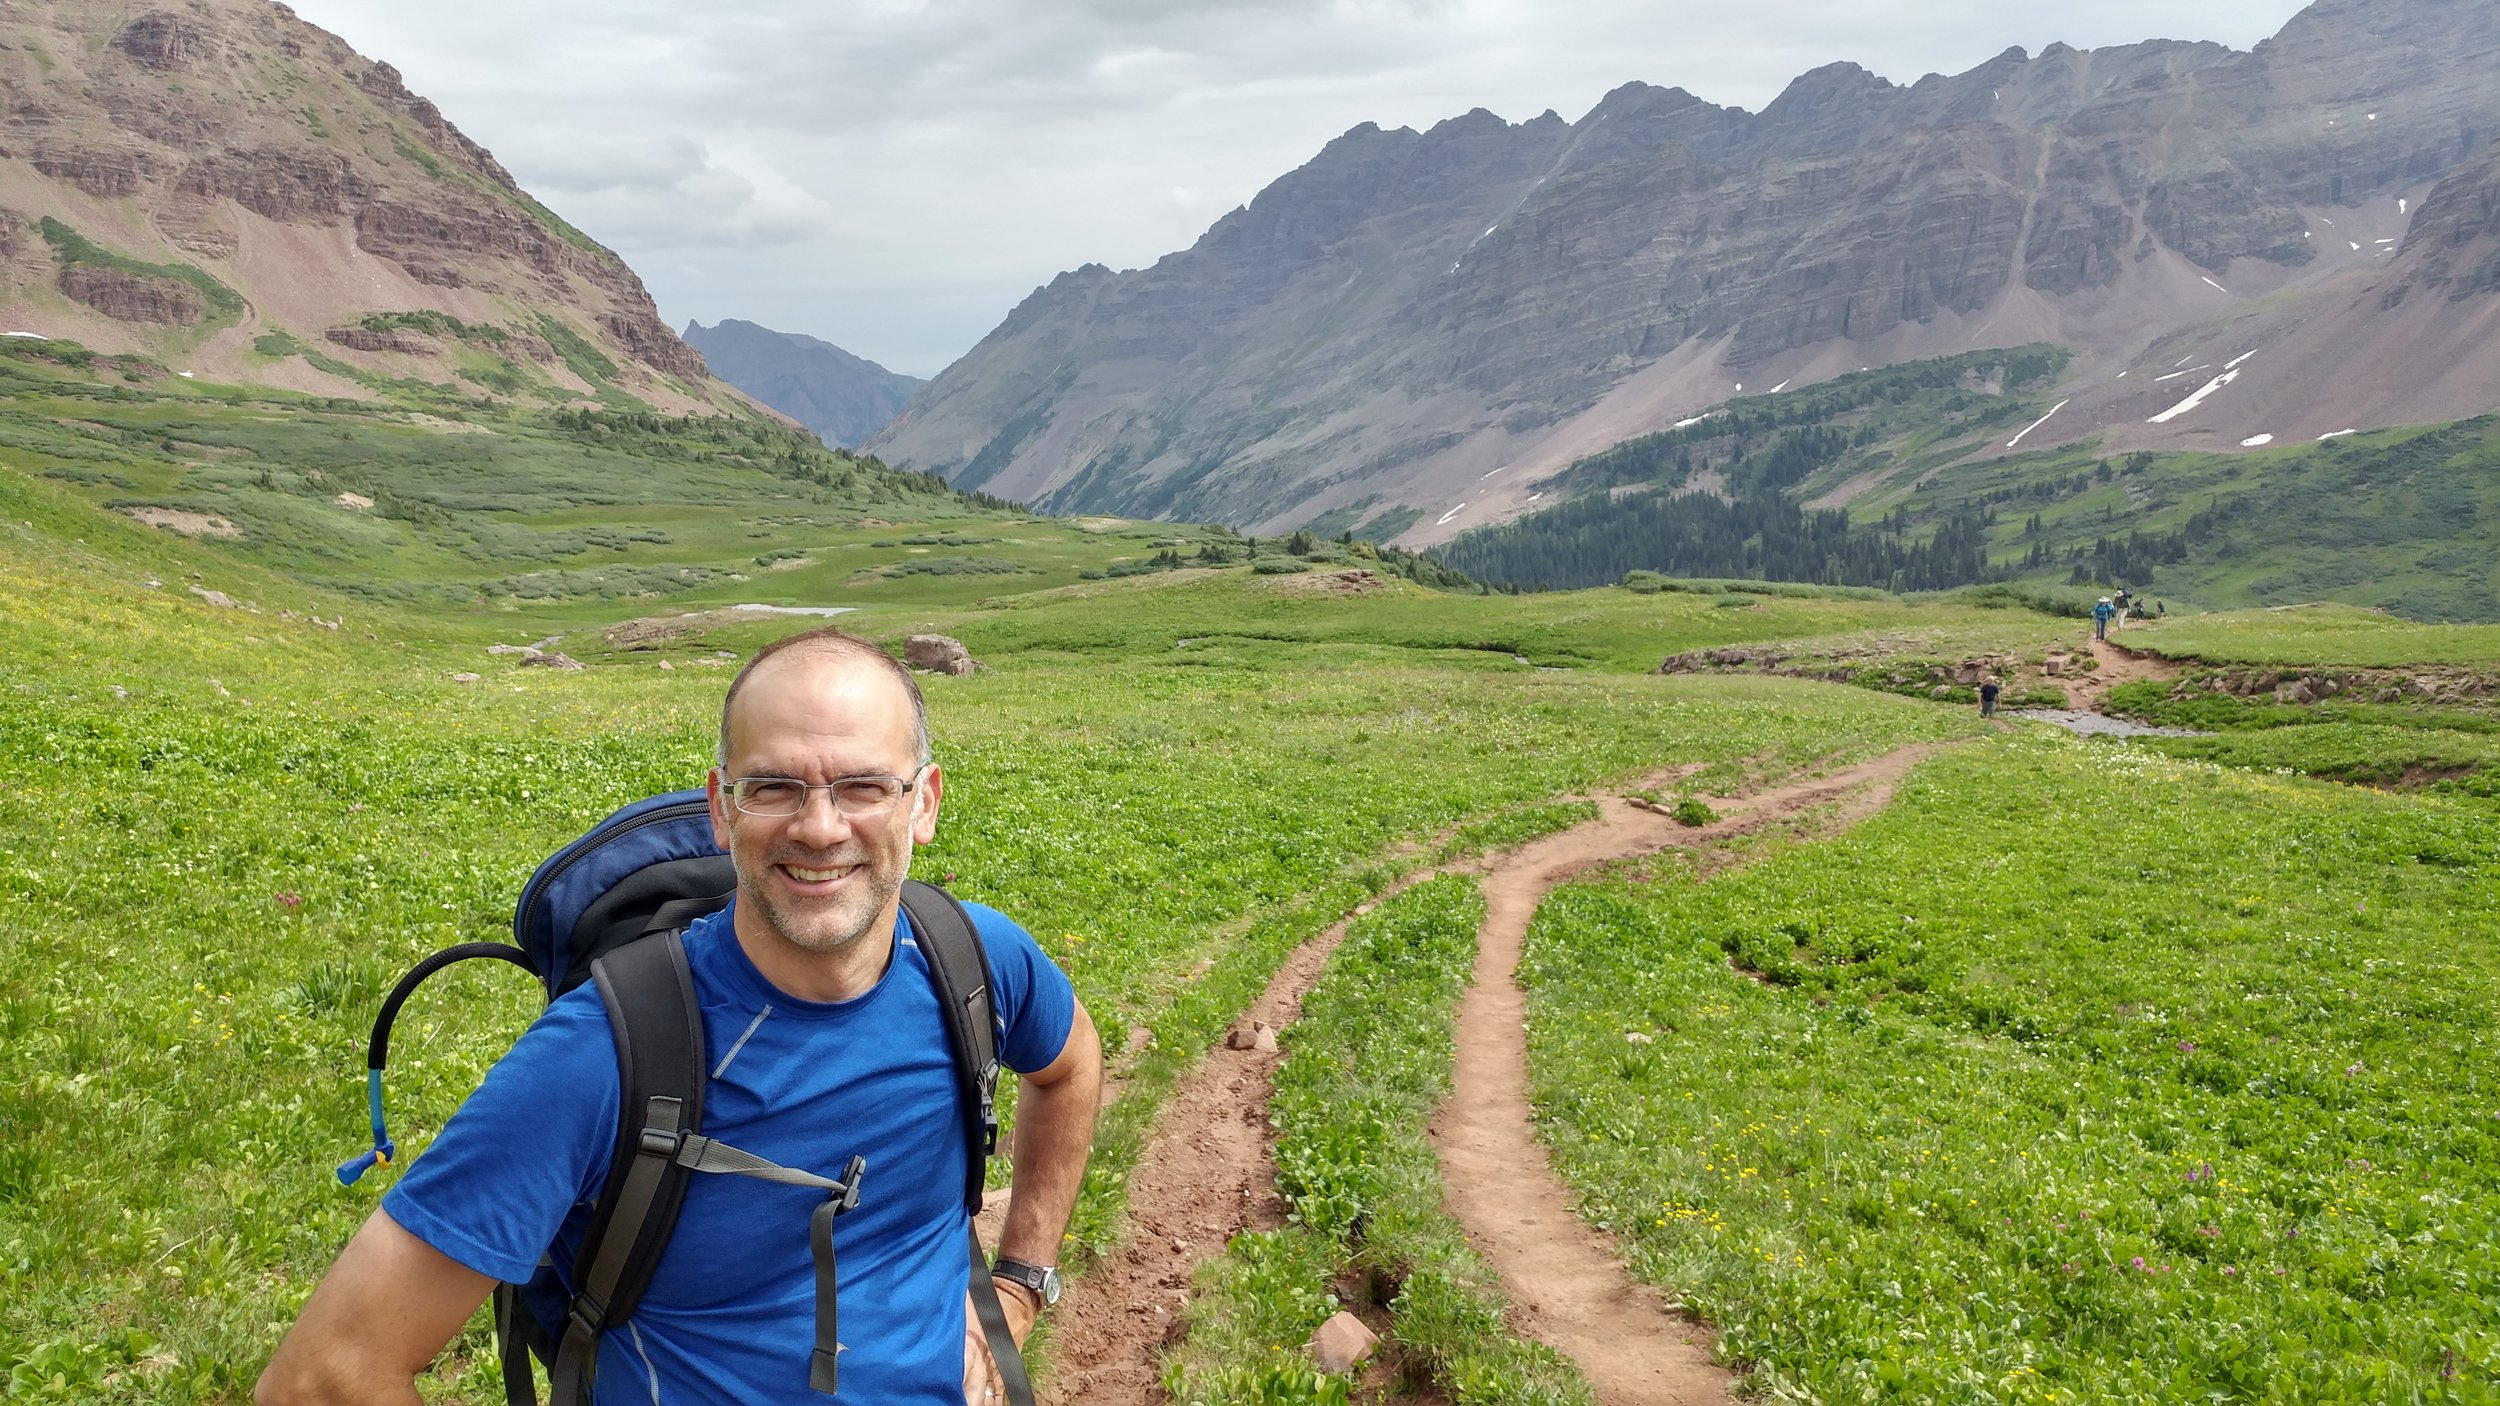 Chris hiking near the Maroon Bells -- two peaks in the Elk Mountains in Colorado.